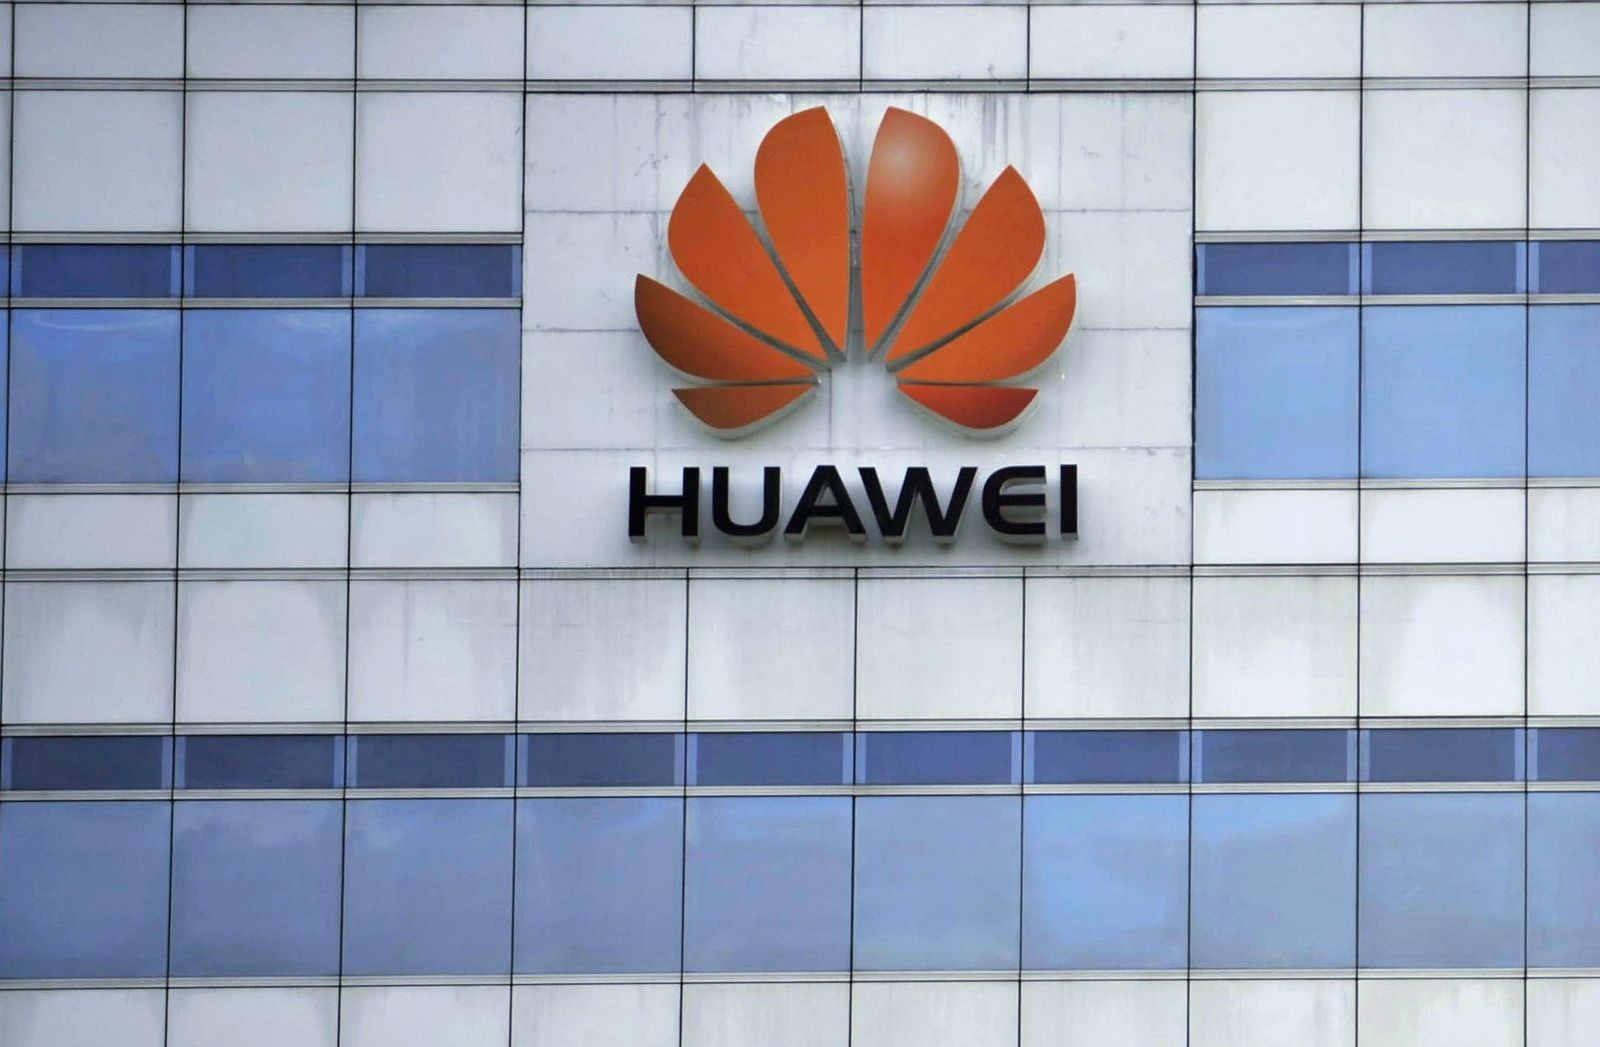 A general view shows the headquarters of Huawei Technologies Co. Ltd. in Shenzhen